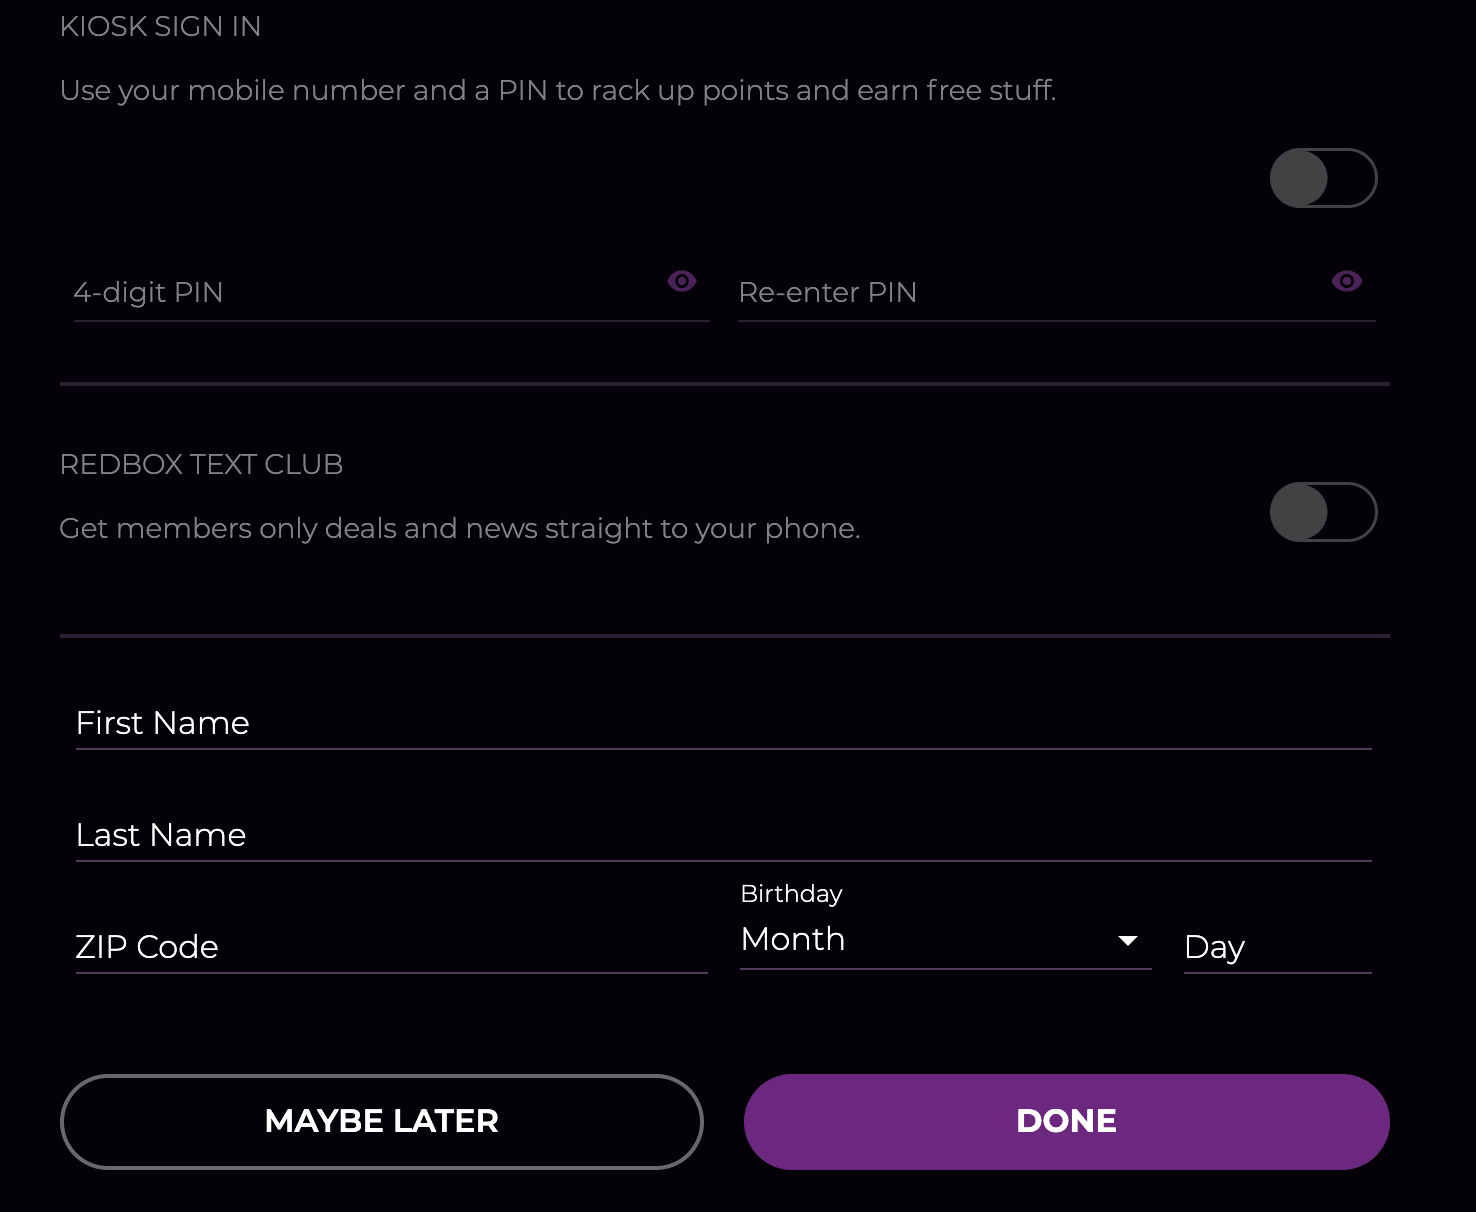 select maybe later option